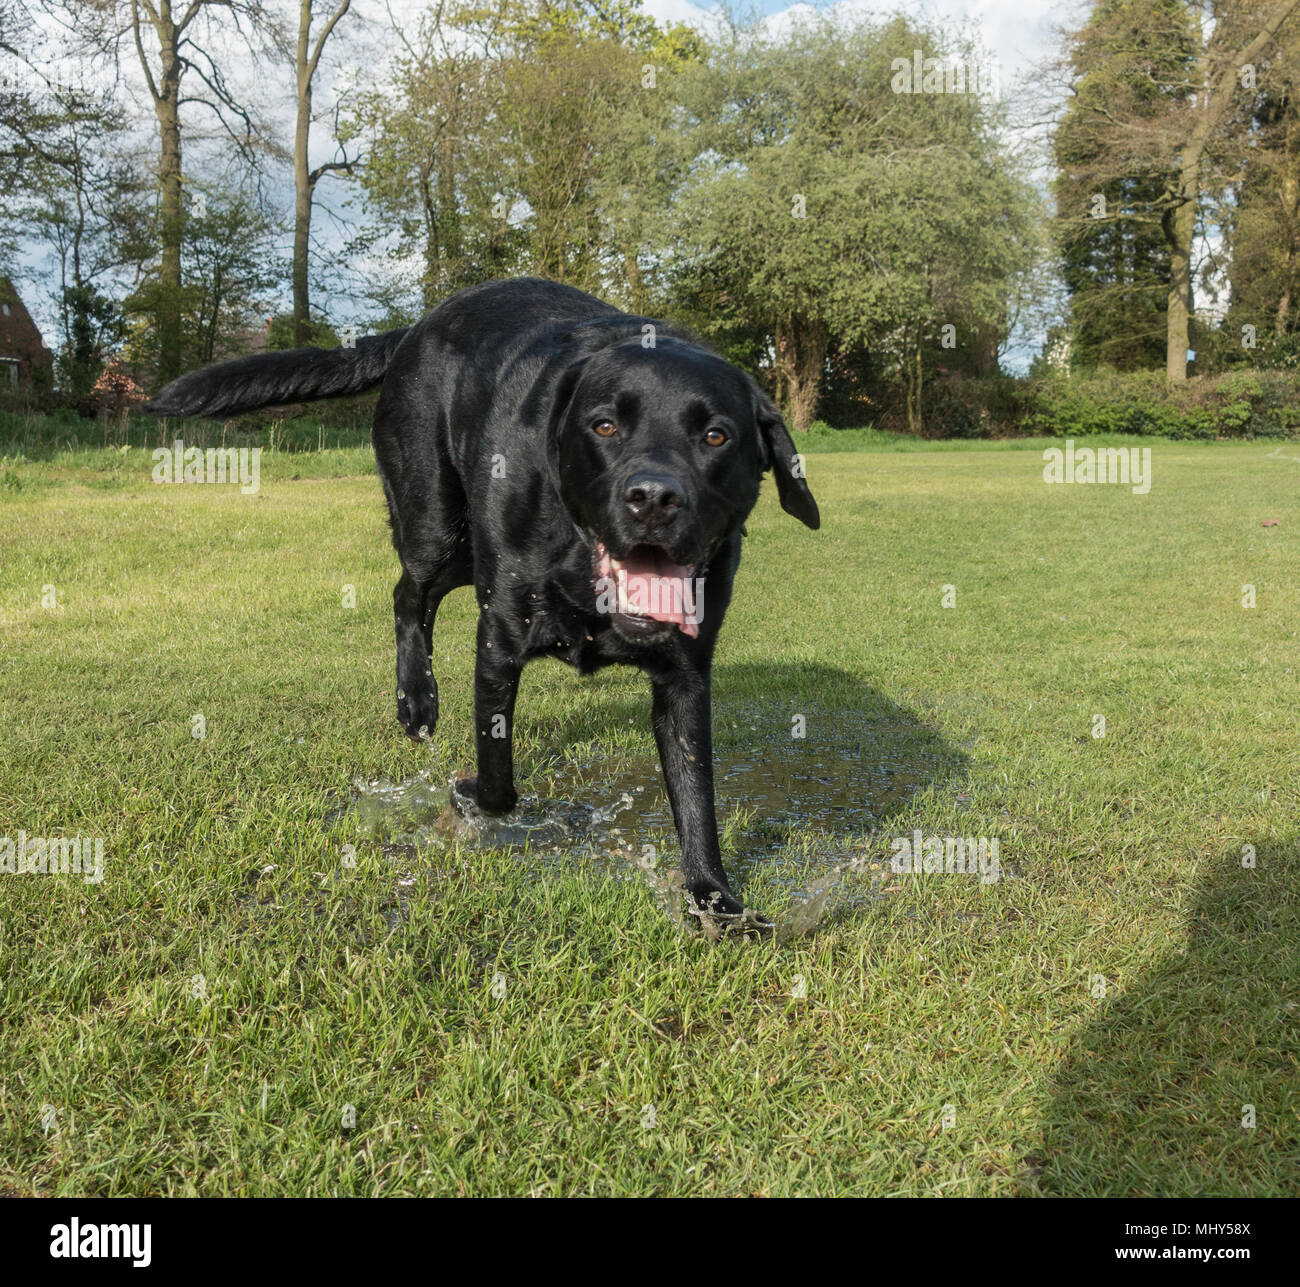 Happy black labrador dog walking in the wet grass - Stock Image